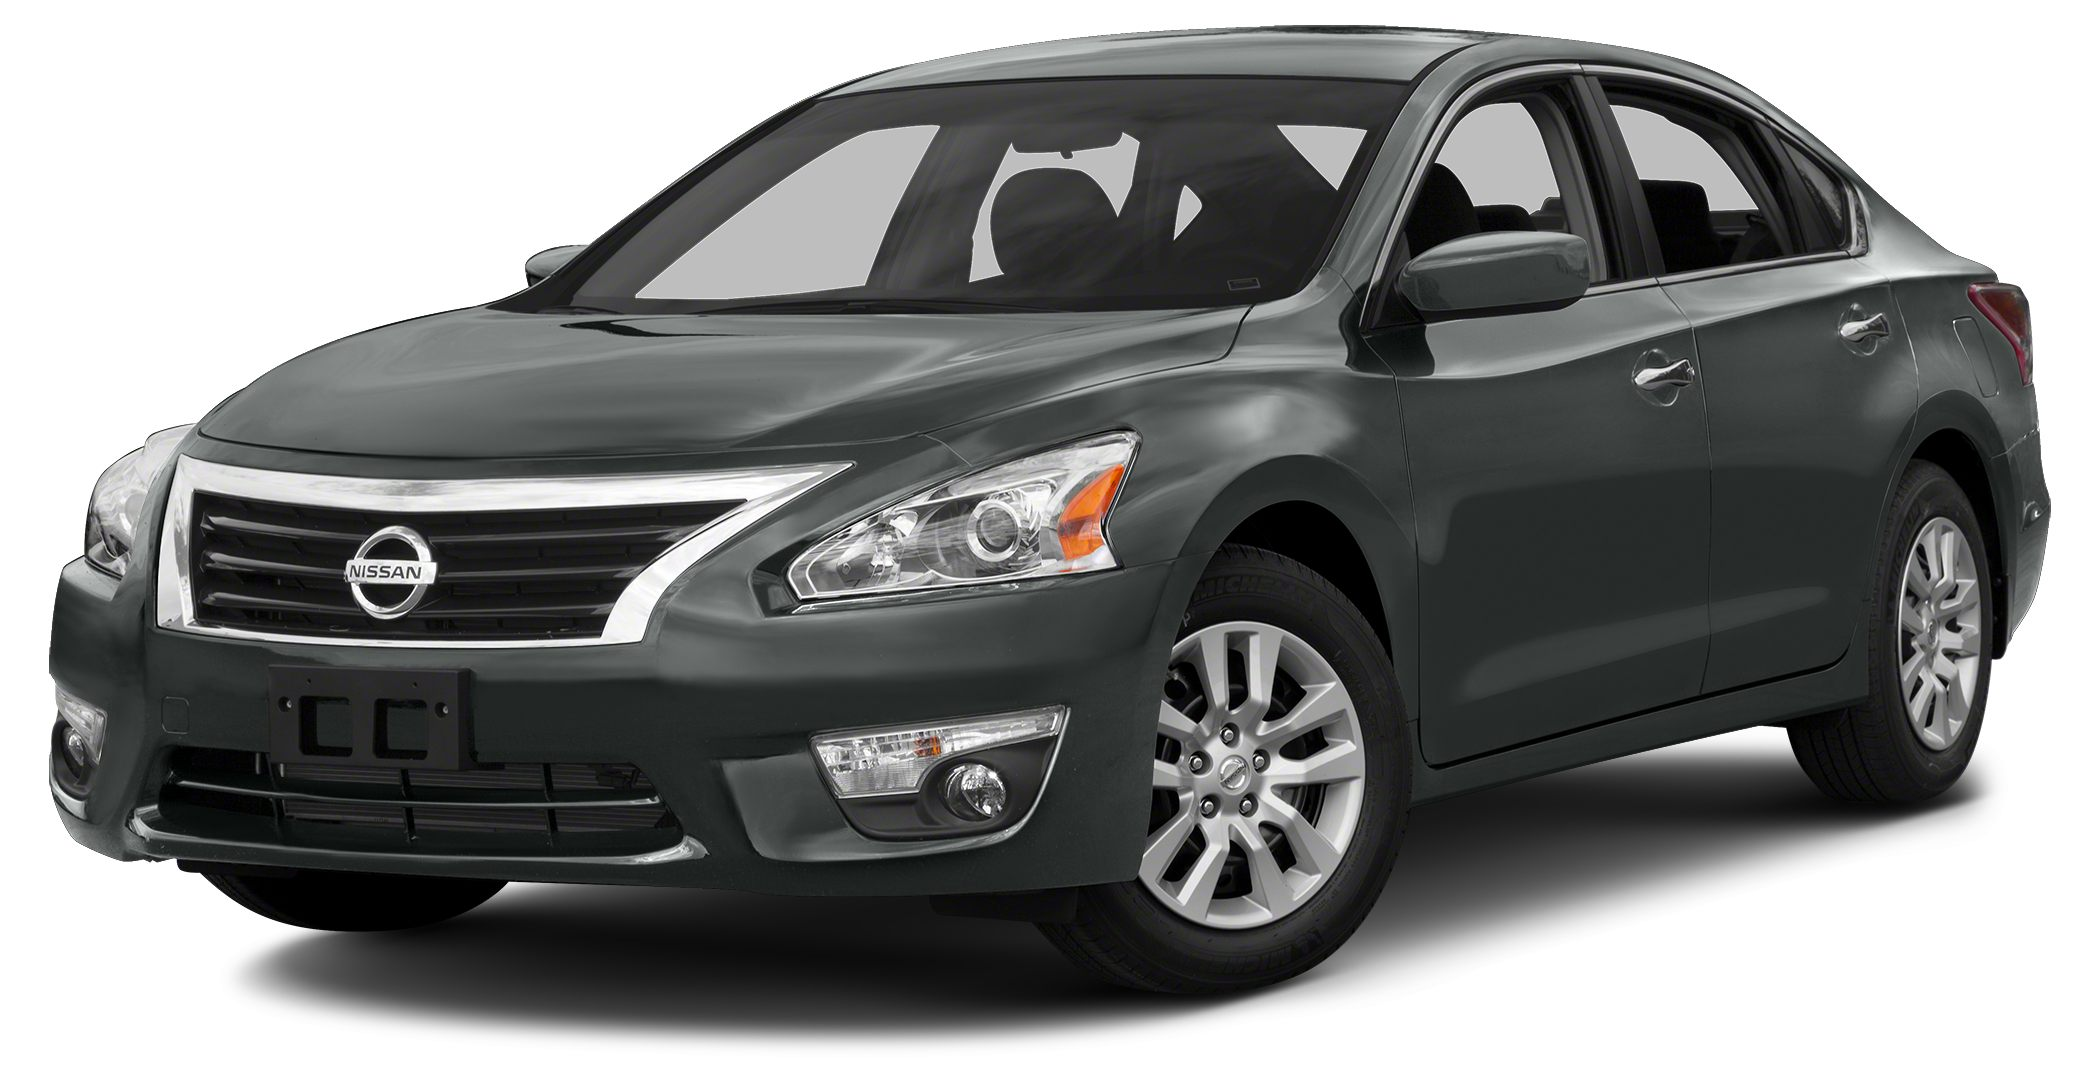 2015 Nissan Altima 25 S Who could say no to a simply outstanding car like this great-looking 2015